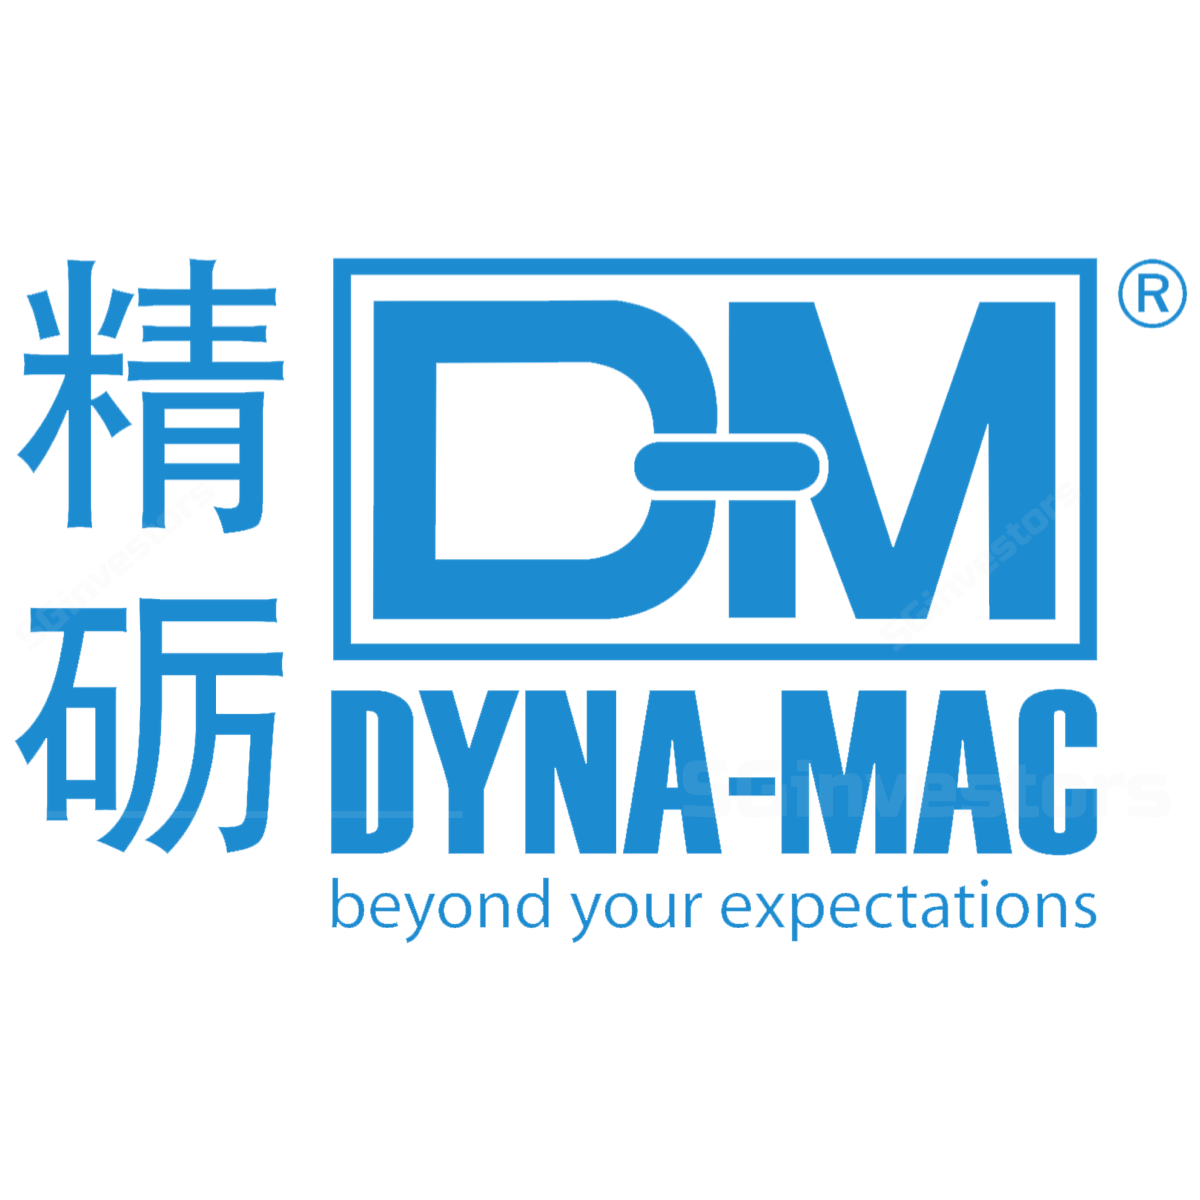 Dyna-Mac Holdings Ltd - CGS-CIMB Research 2018-08-30: Narrowed Losses; Still Awaiting FPSO Project Pipeline